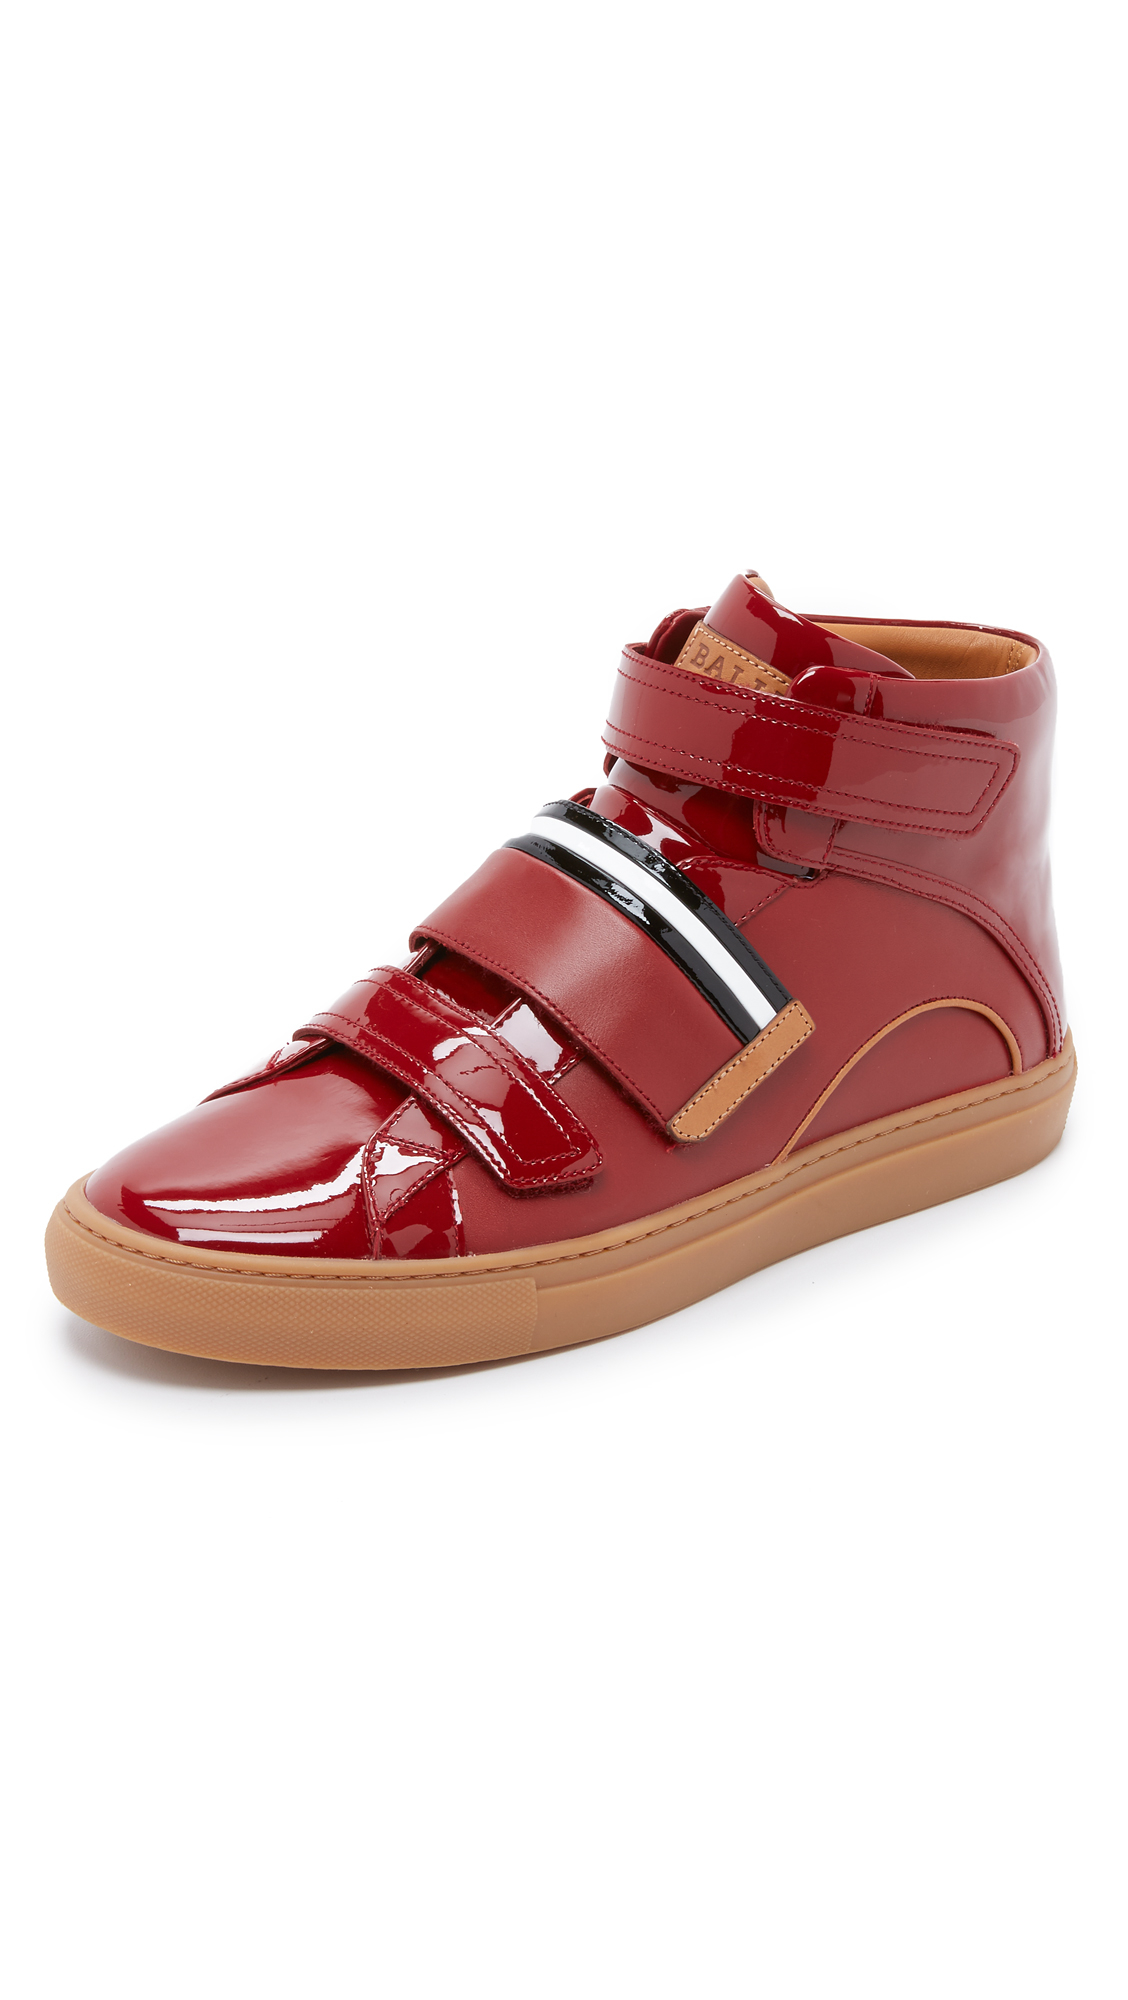 Bally Patent Leather Shoes